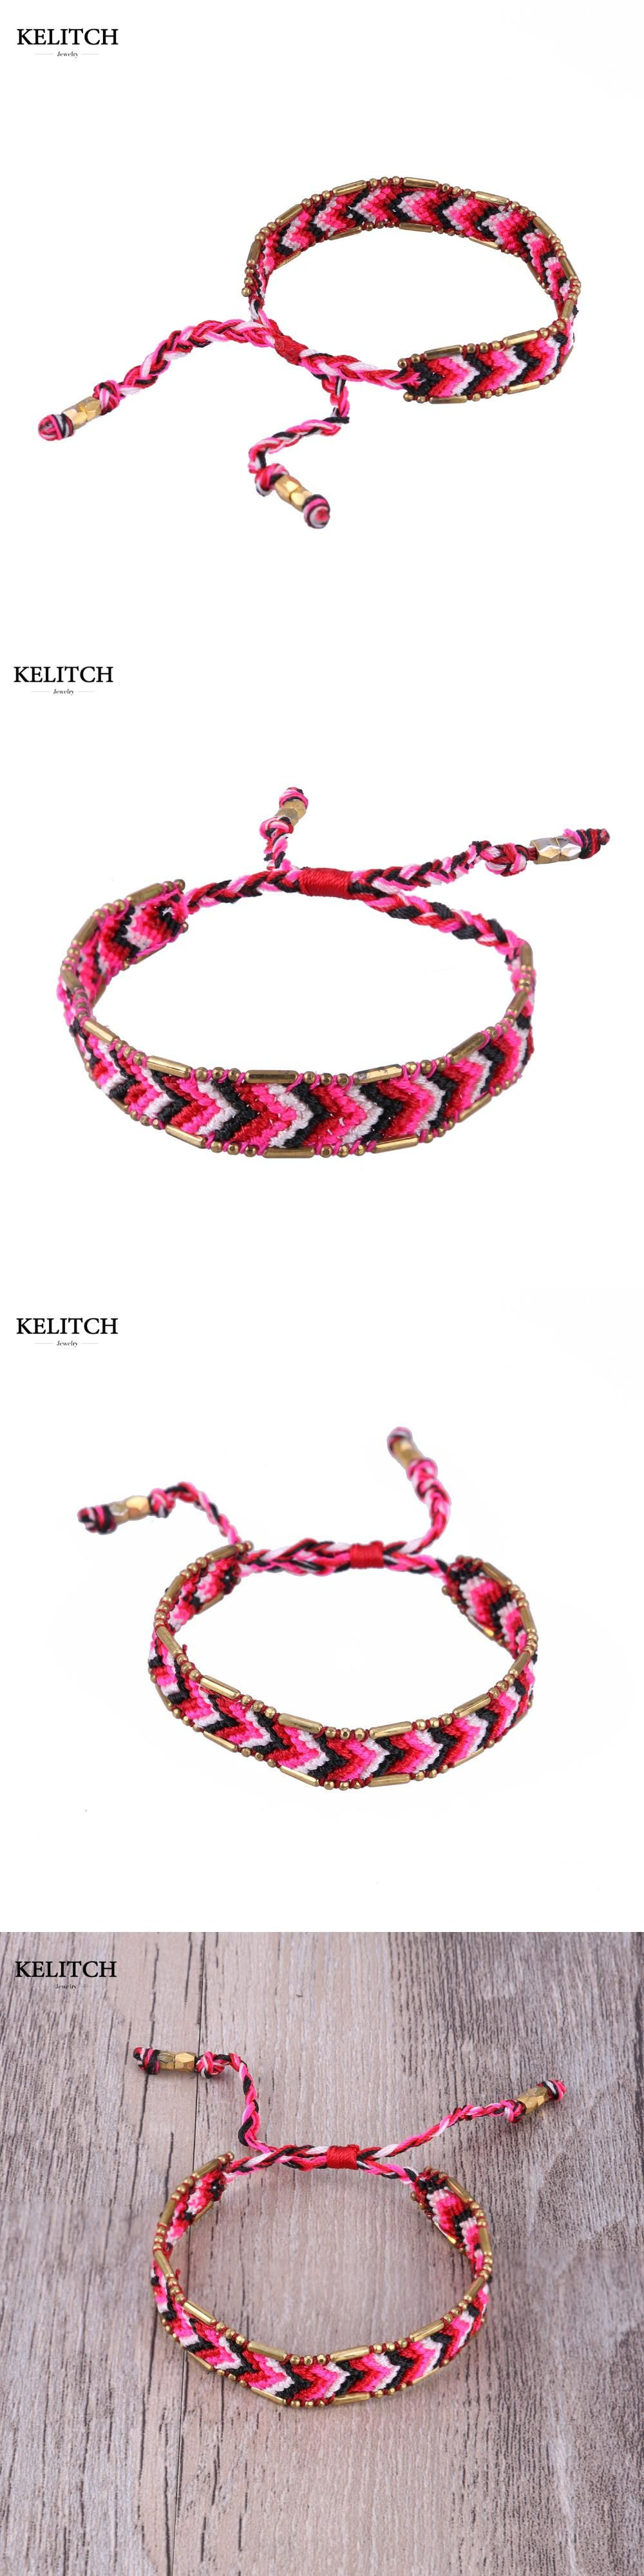 4063e03c0c Kelitch Jewelry Adjustable Cotton Woven String Rope Bracelets Handmade  Exquisite Wrap Lace-up Red Friendship Bracelet